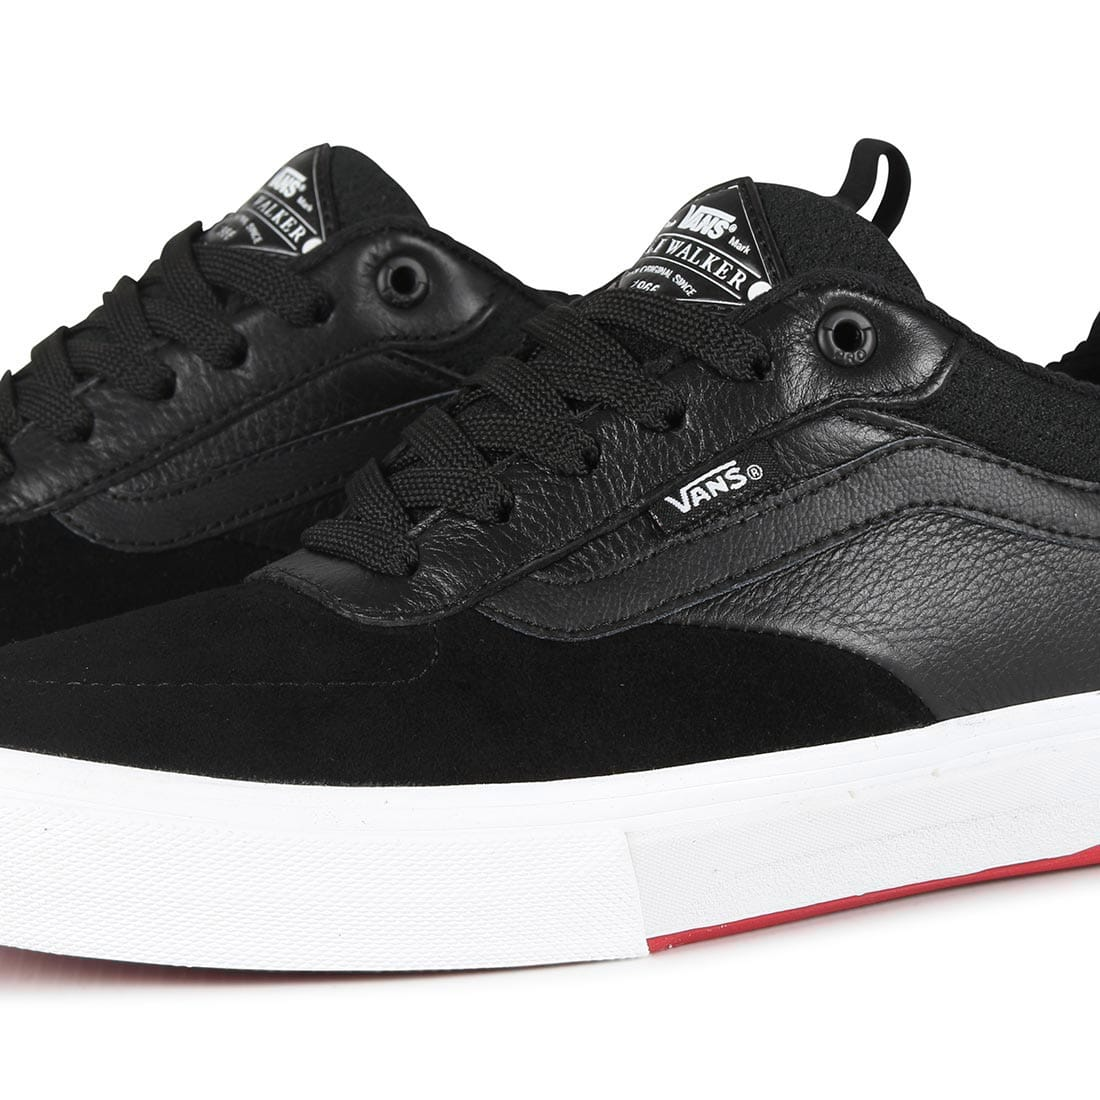 4a4c9689faea23 ... Vans-Kyle-Walker-Pro-Skate-Shoes-Black-Red ...